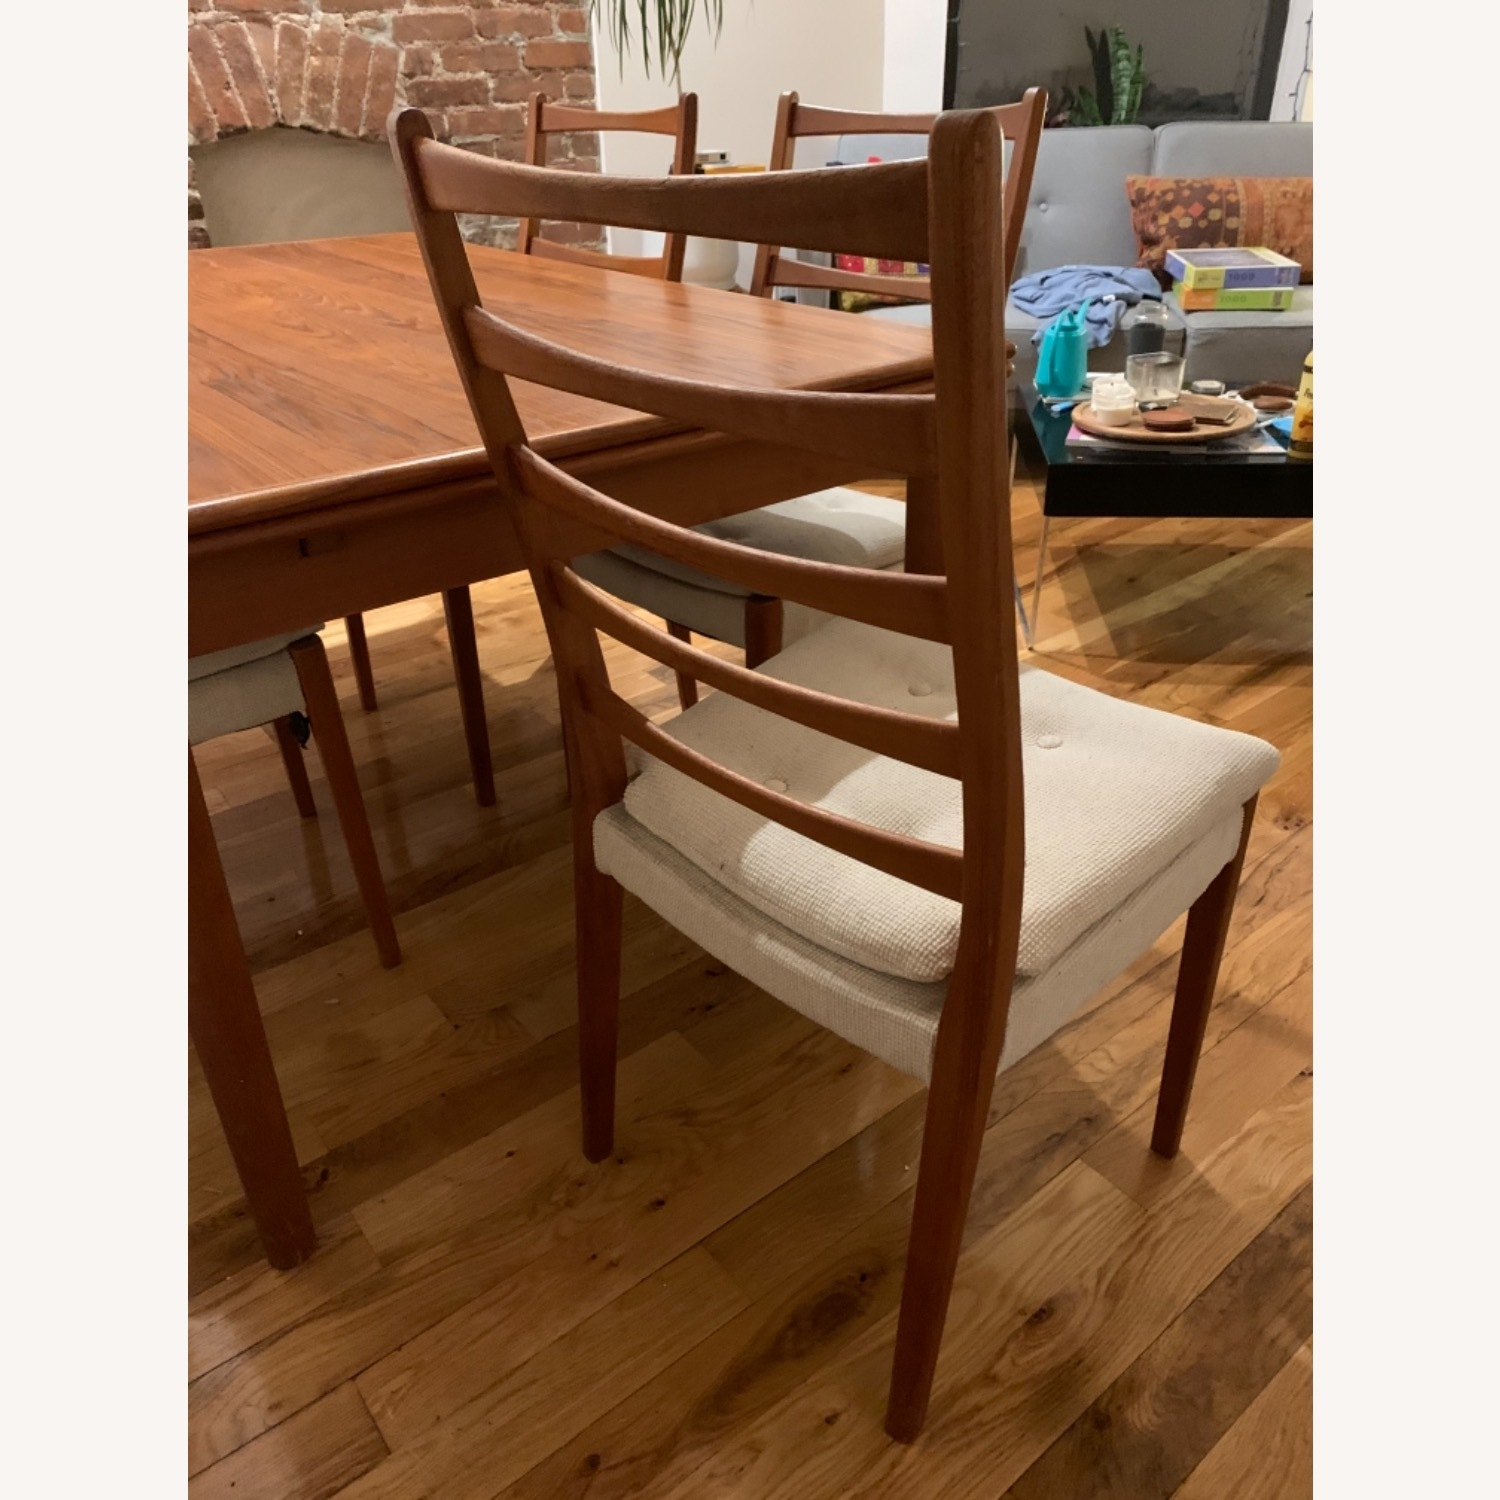 Mid Century Extendable Dining Table w/Four Chairs - image-6